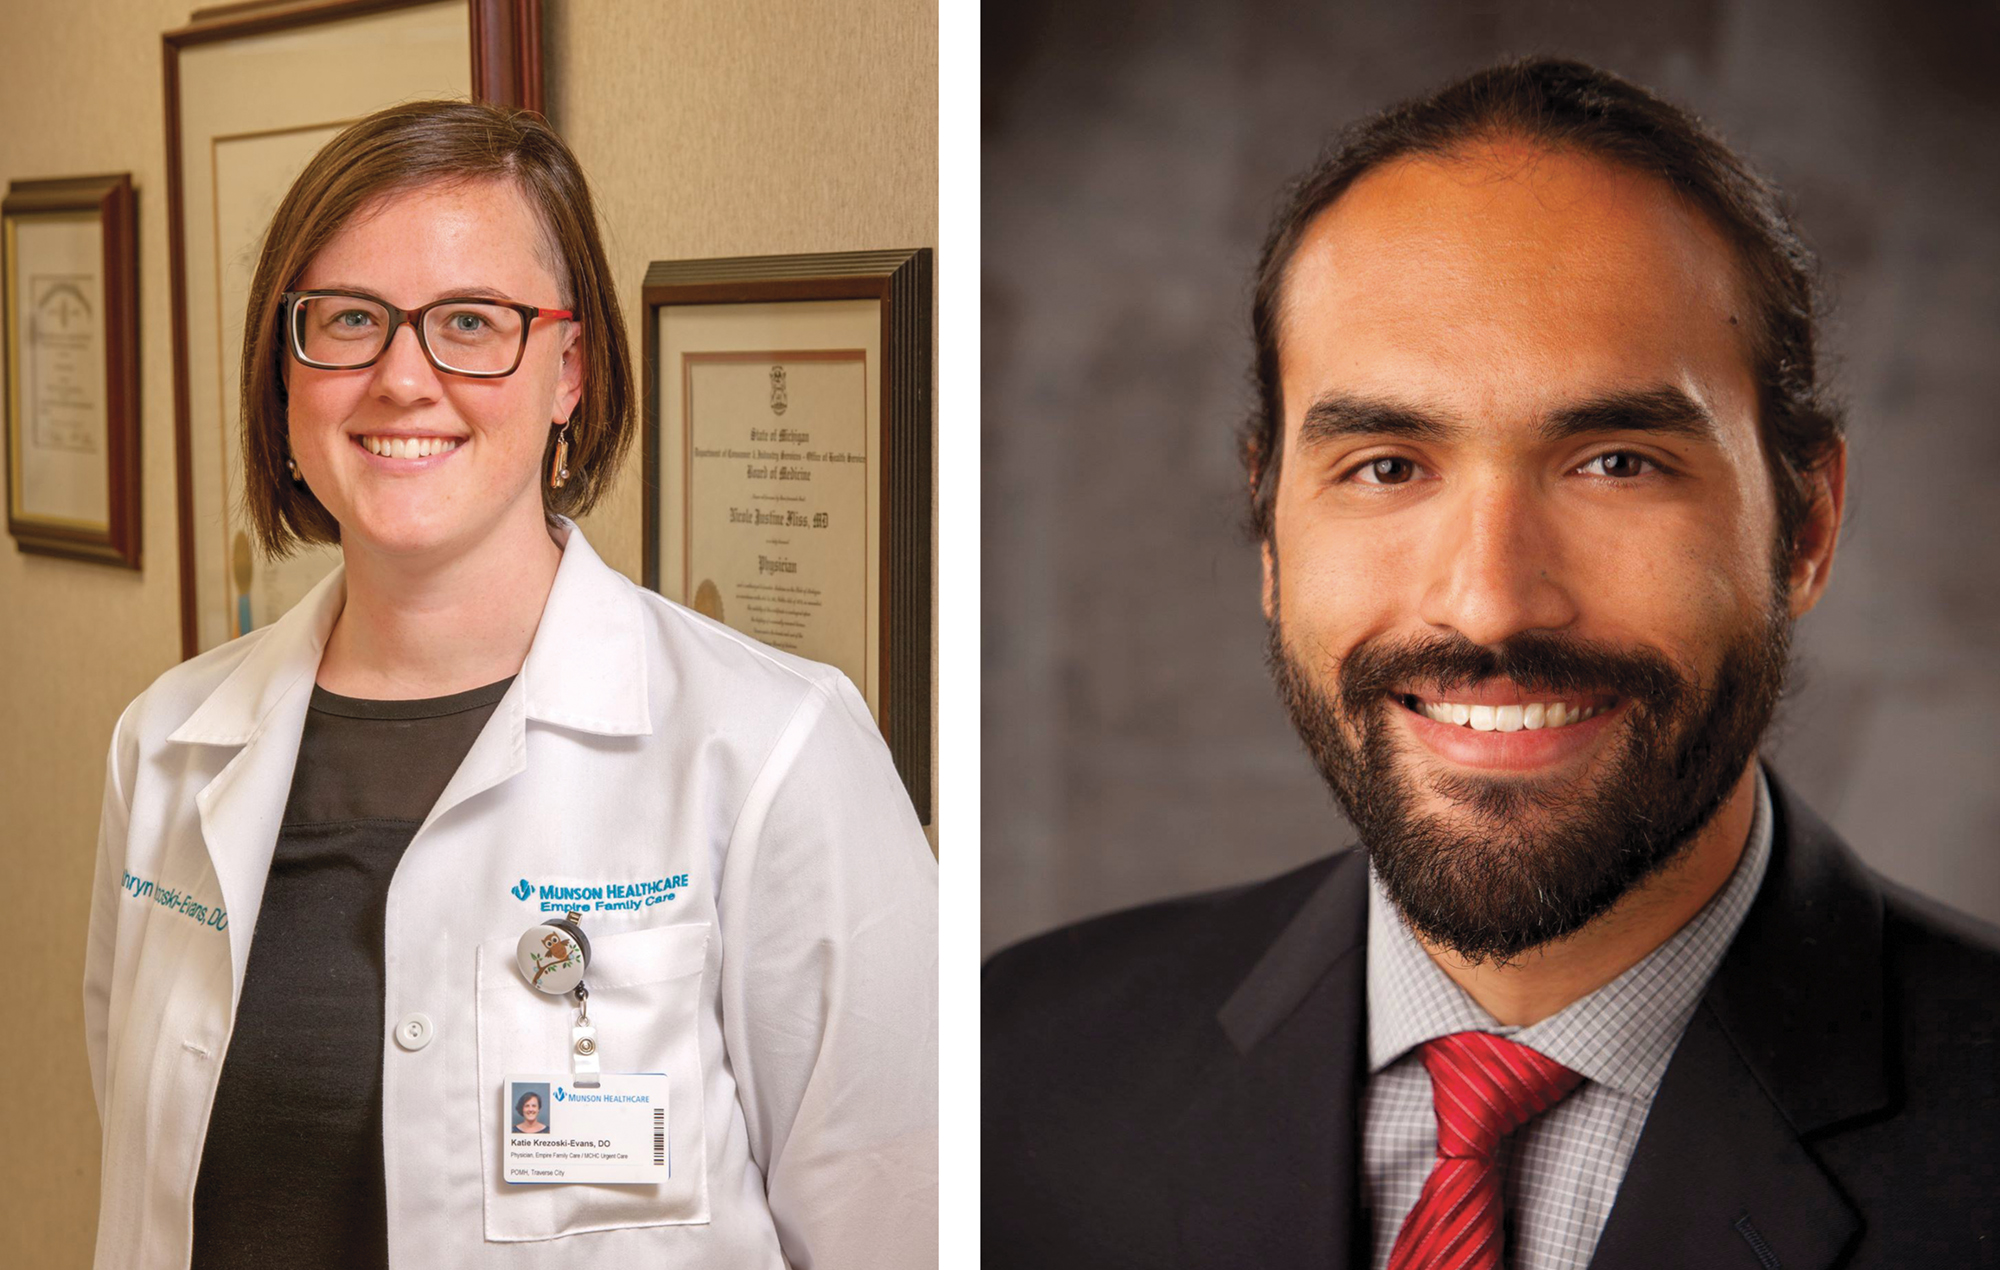 Dr. Katie Krezoski-Evans and Dr. Cyrus Ghaemi: Country Doctors of Empire